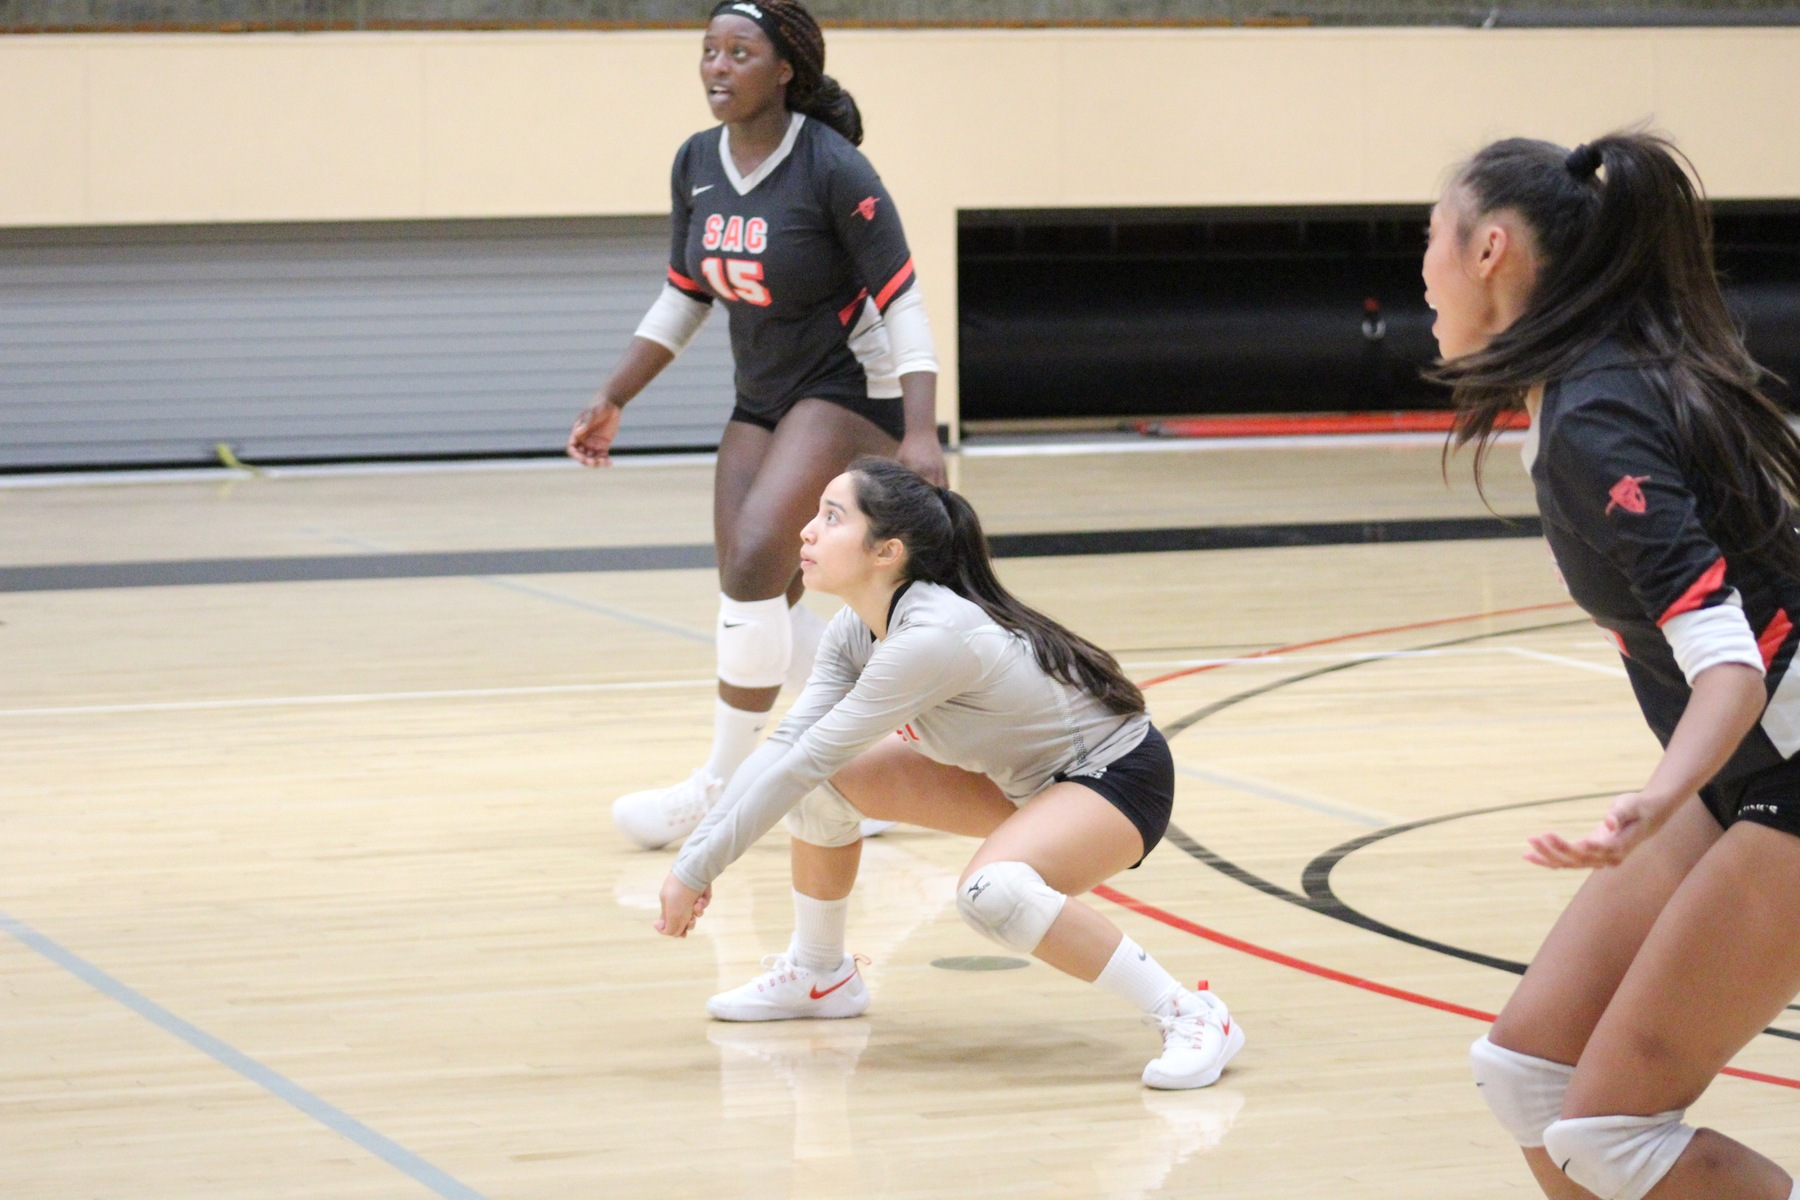 SAC Volleyball Falls to Cypress, 3-0